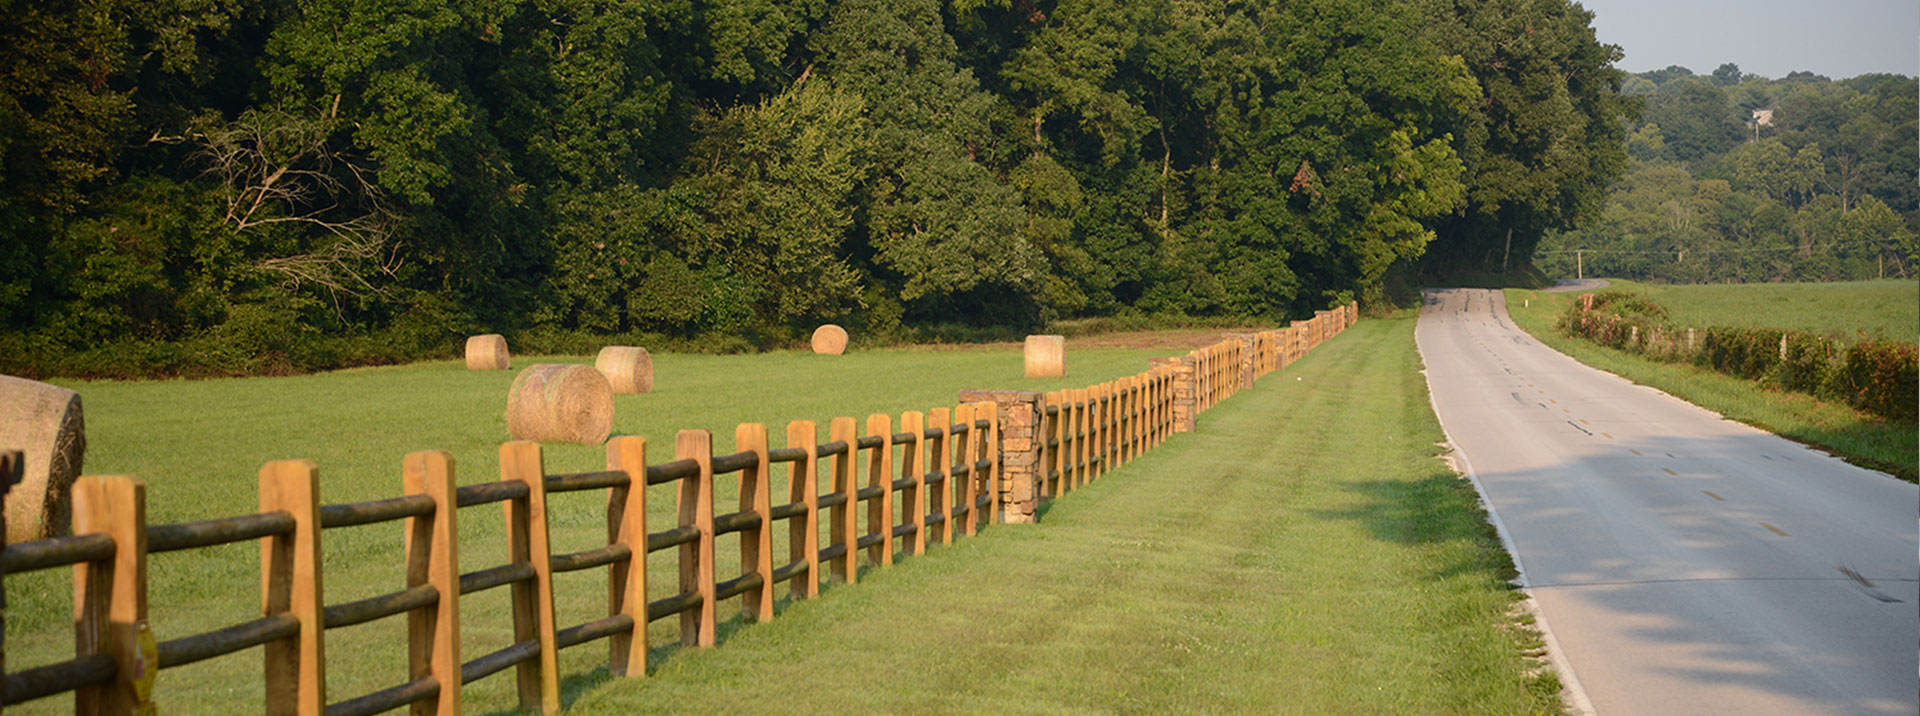 Country road with fence and hay bales.